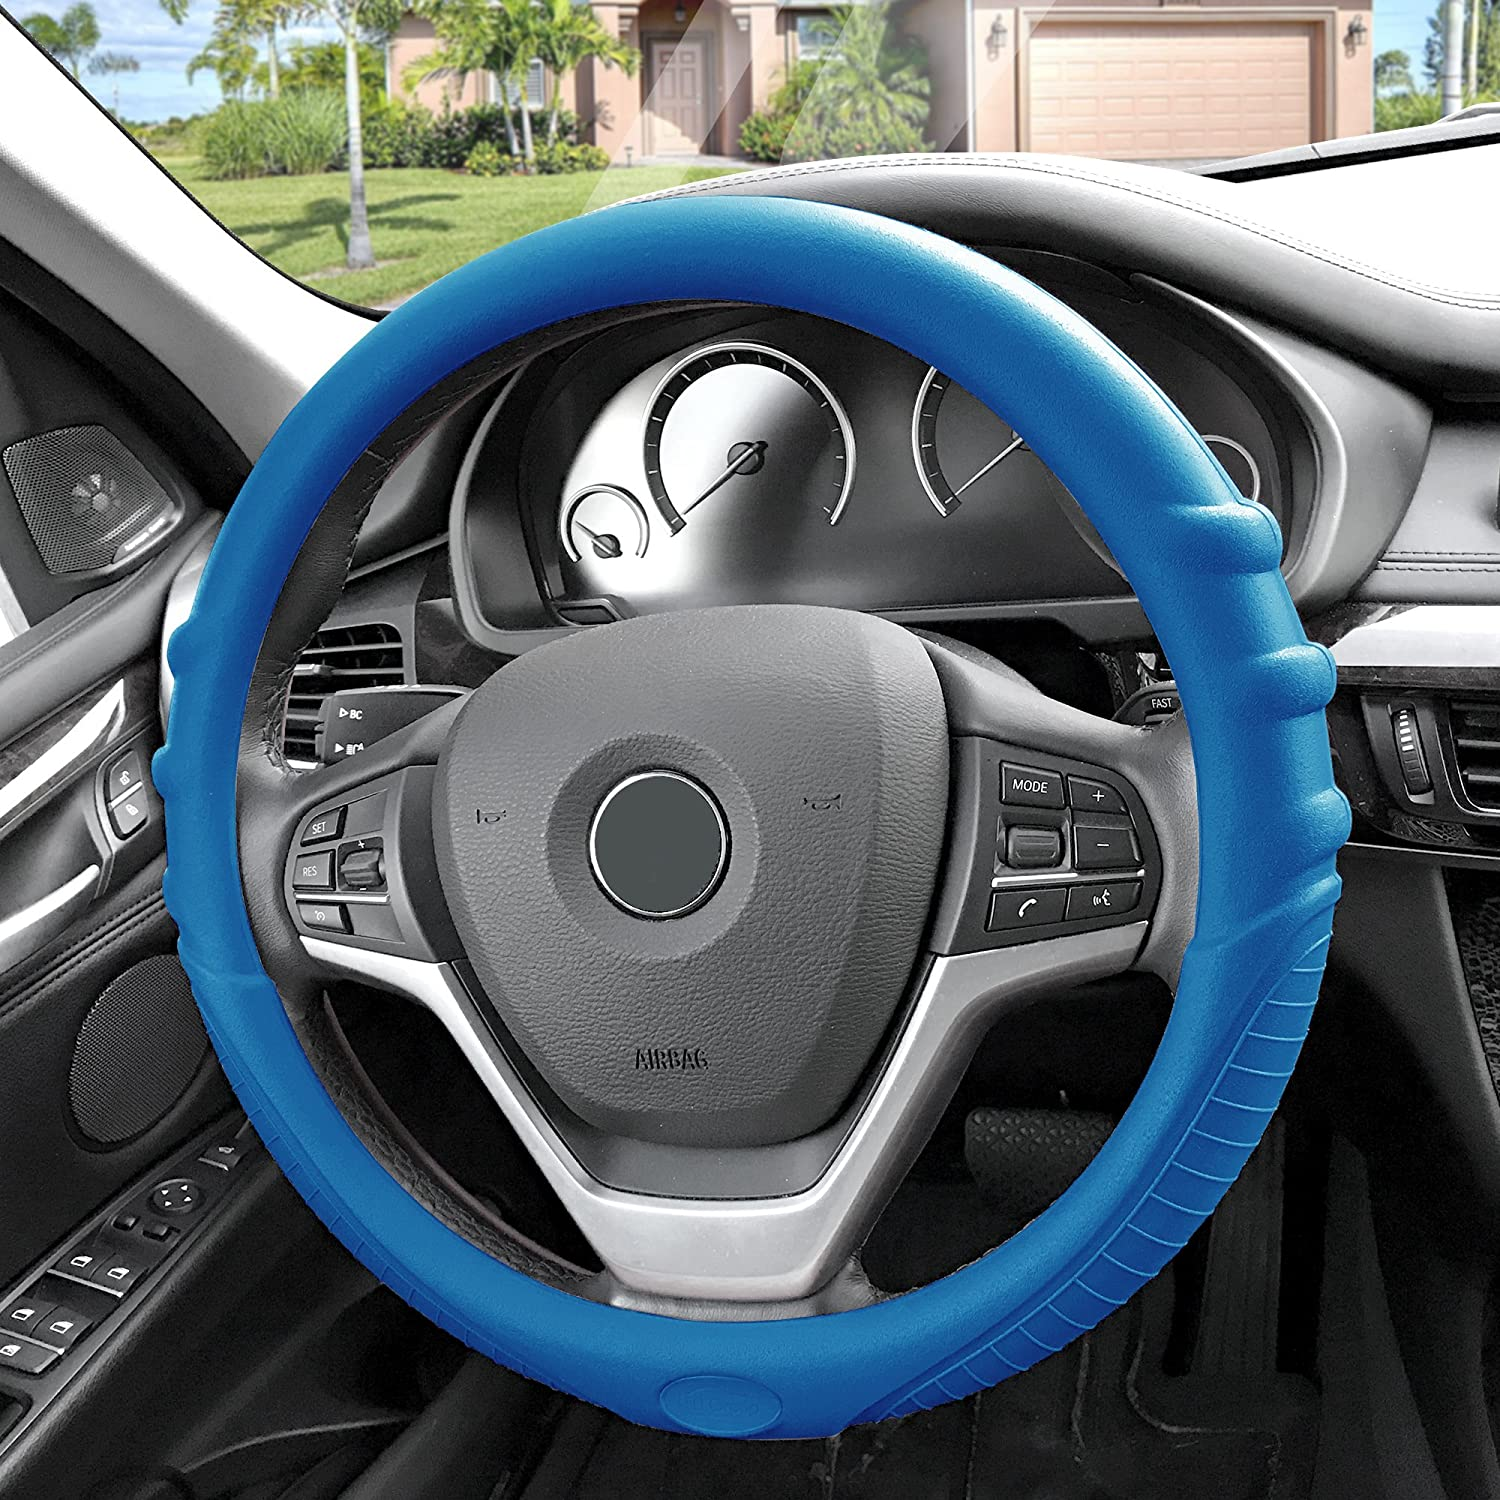 FH Group FH3003GRAY Gray Steering Wheel Cover Silicone W. Grip /& Pattern Massaging grip Gray Color-Fit Most Car Truck Suv or Van